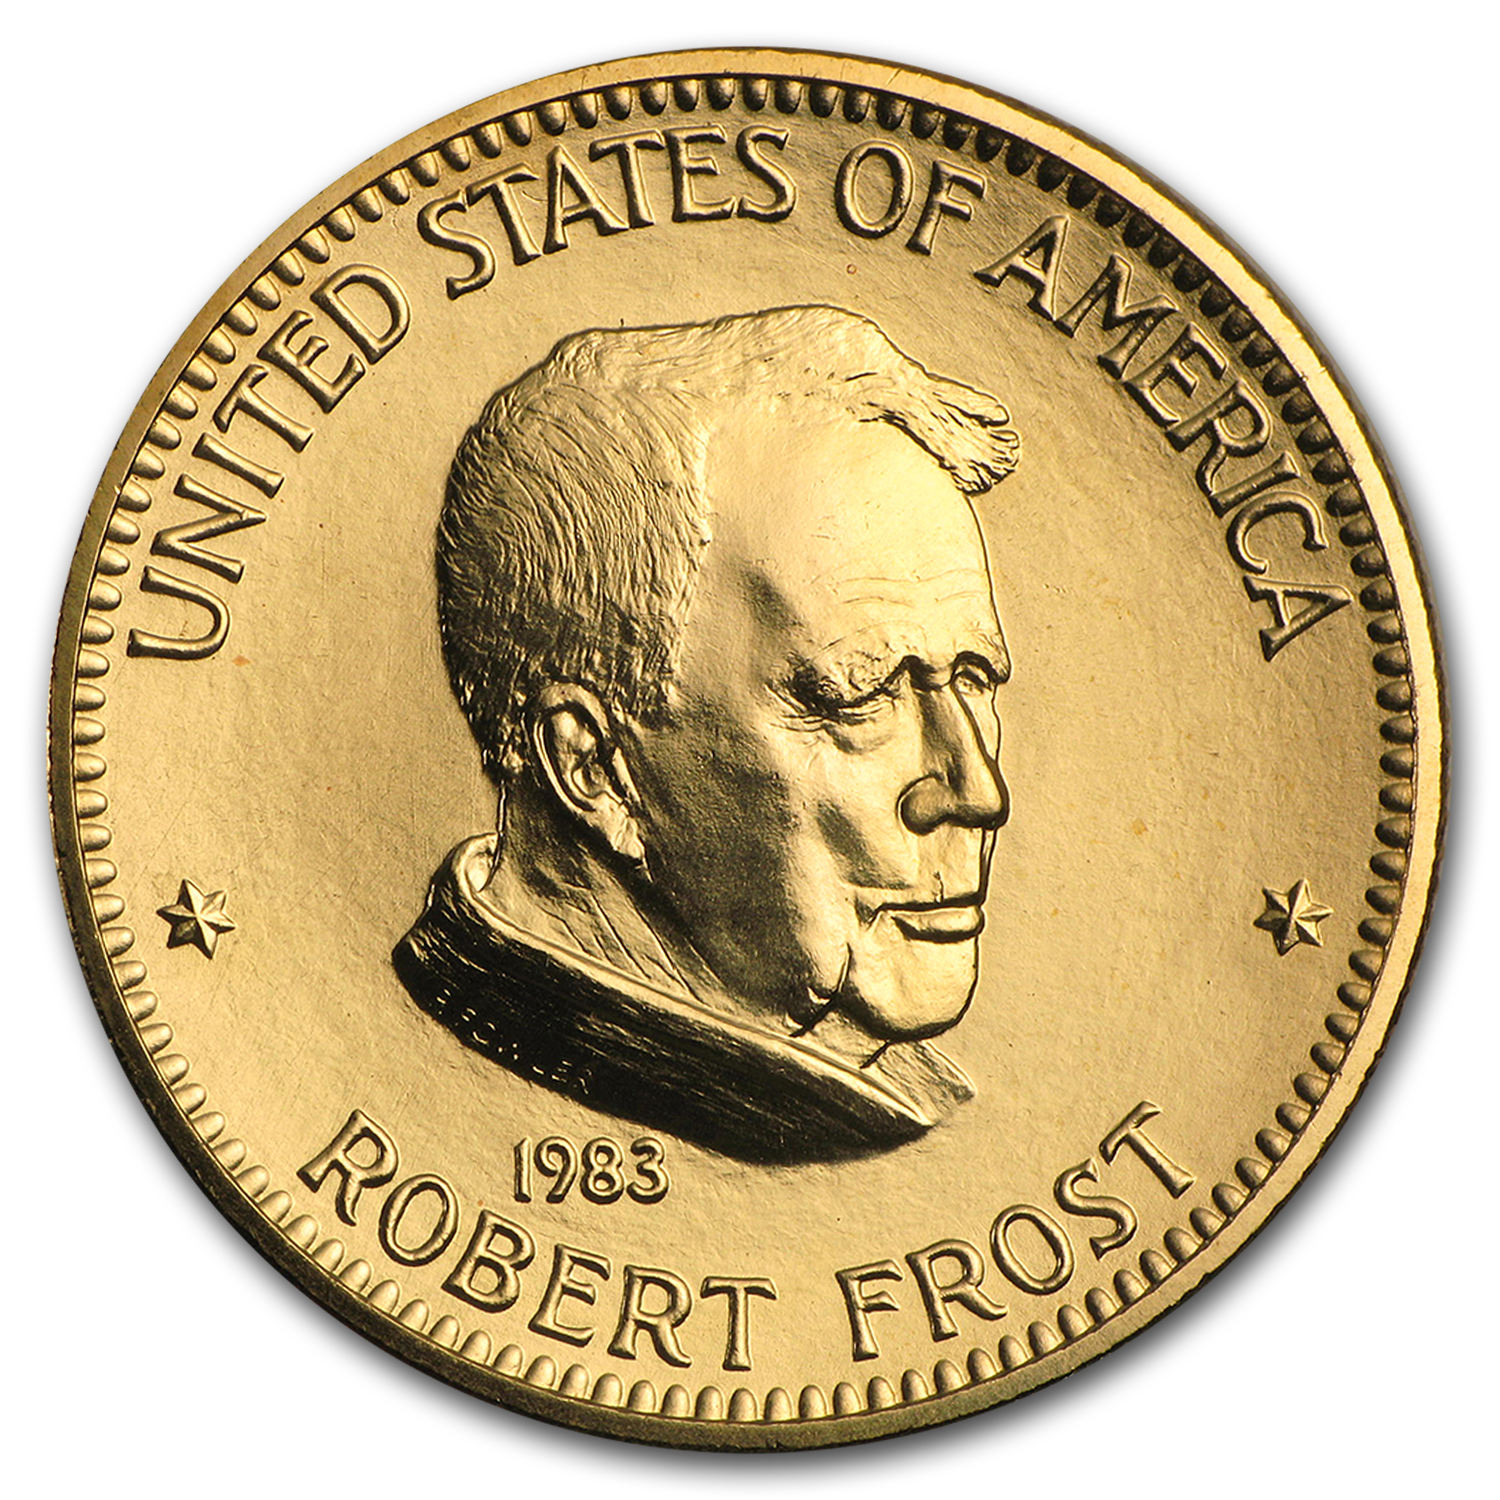 U.S. Mint 1 oz Gold Commemorative Arts Medal Robert Frost